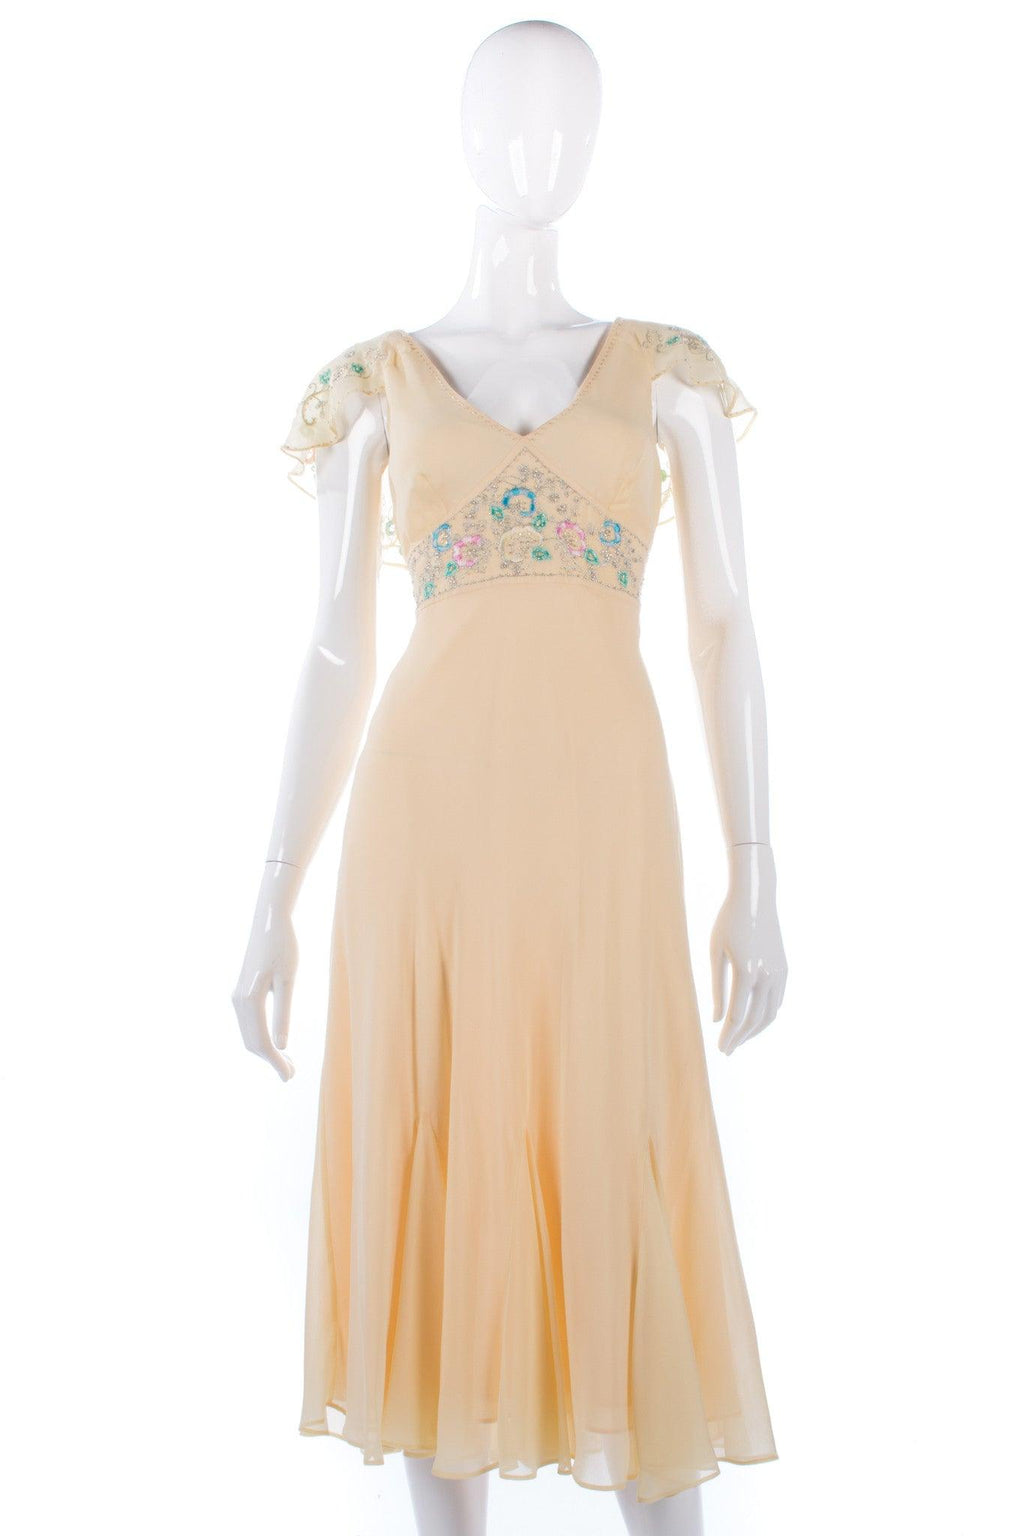 Beautiful lemon chiffon dress with beaded details, size 10/12